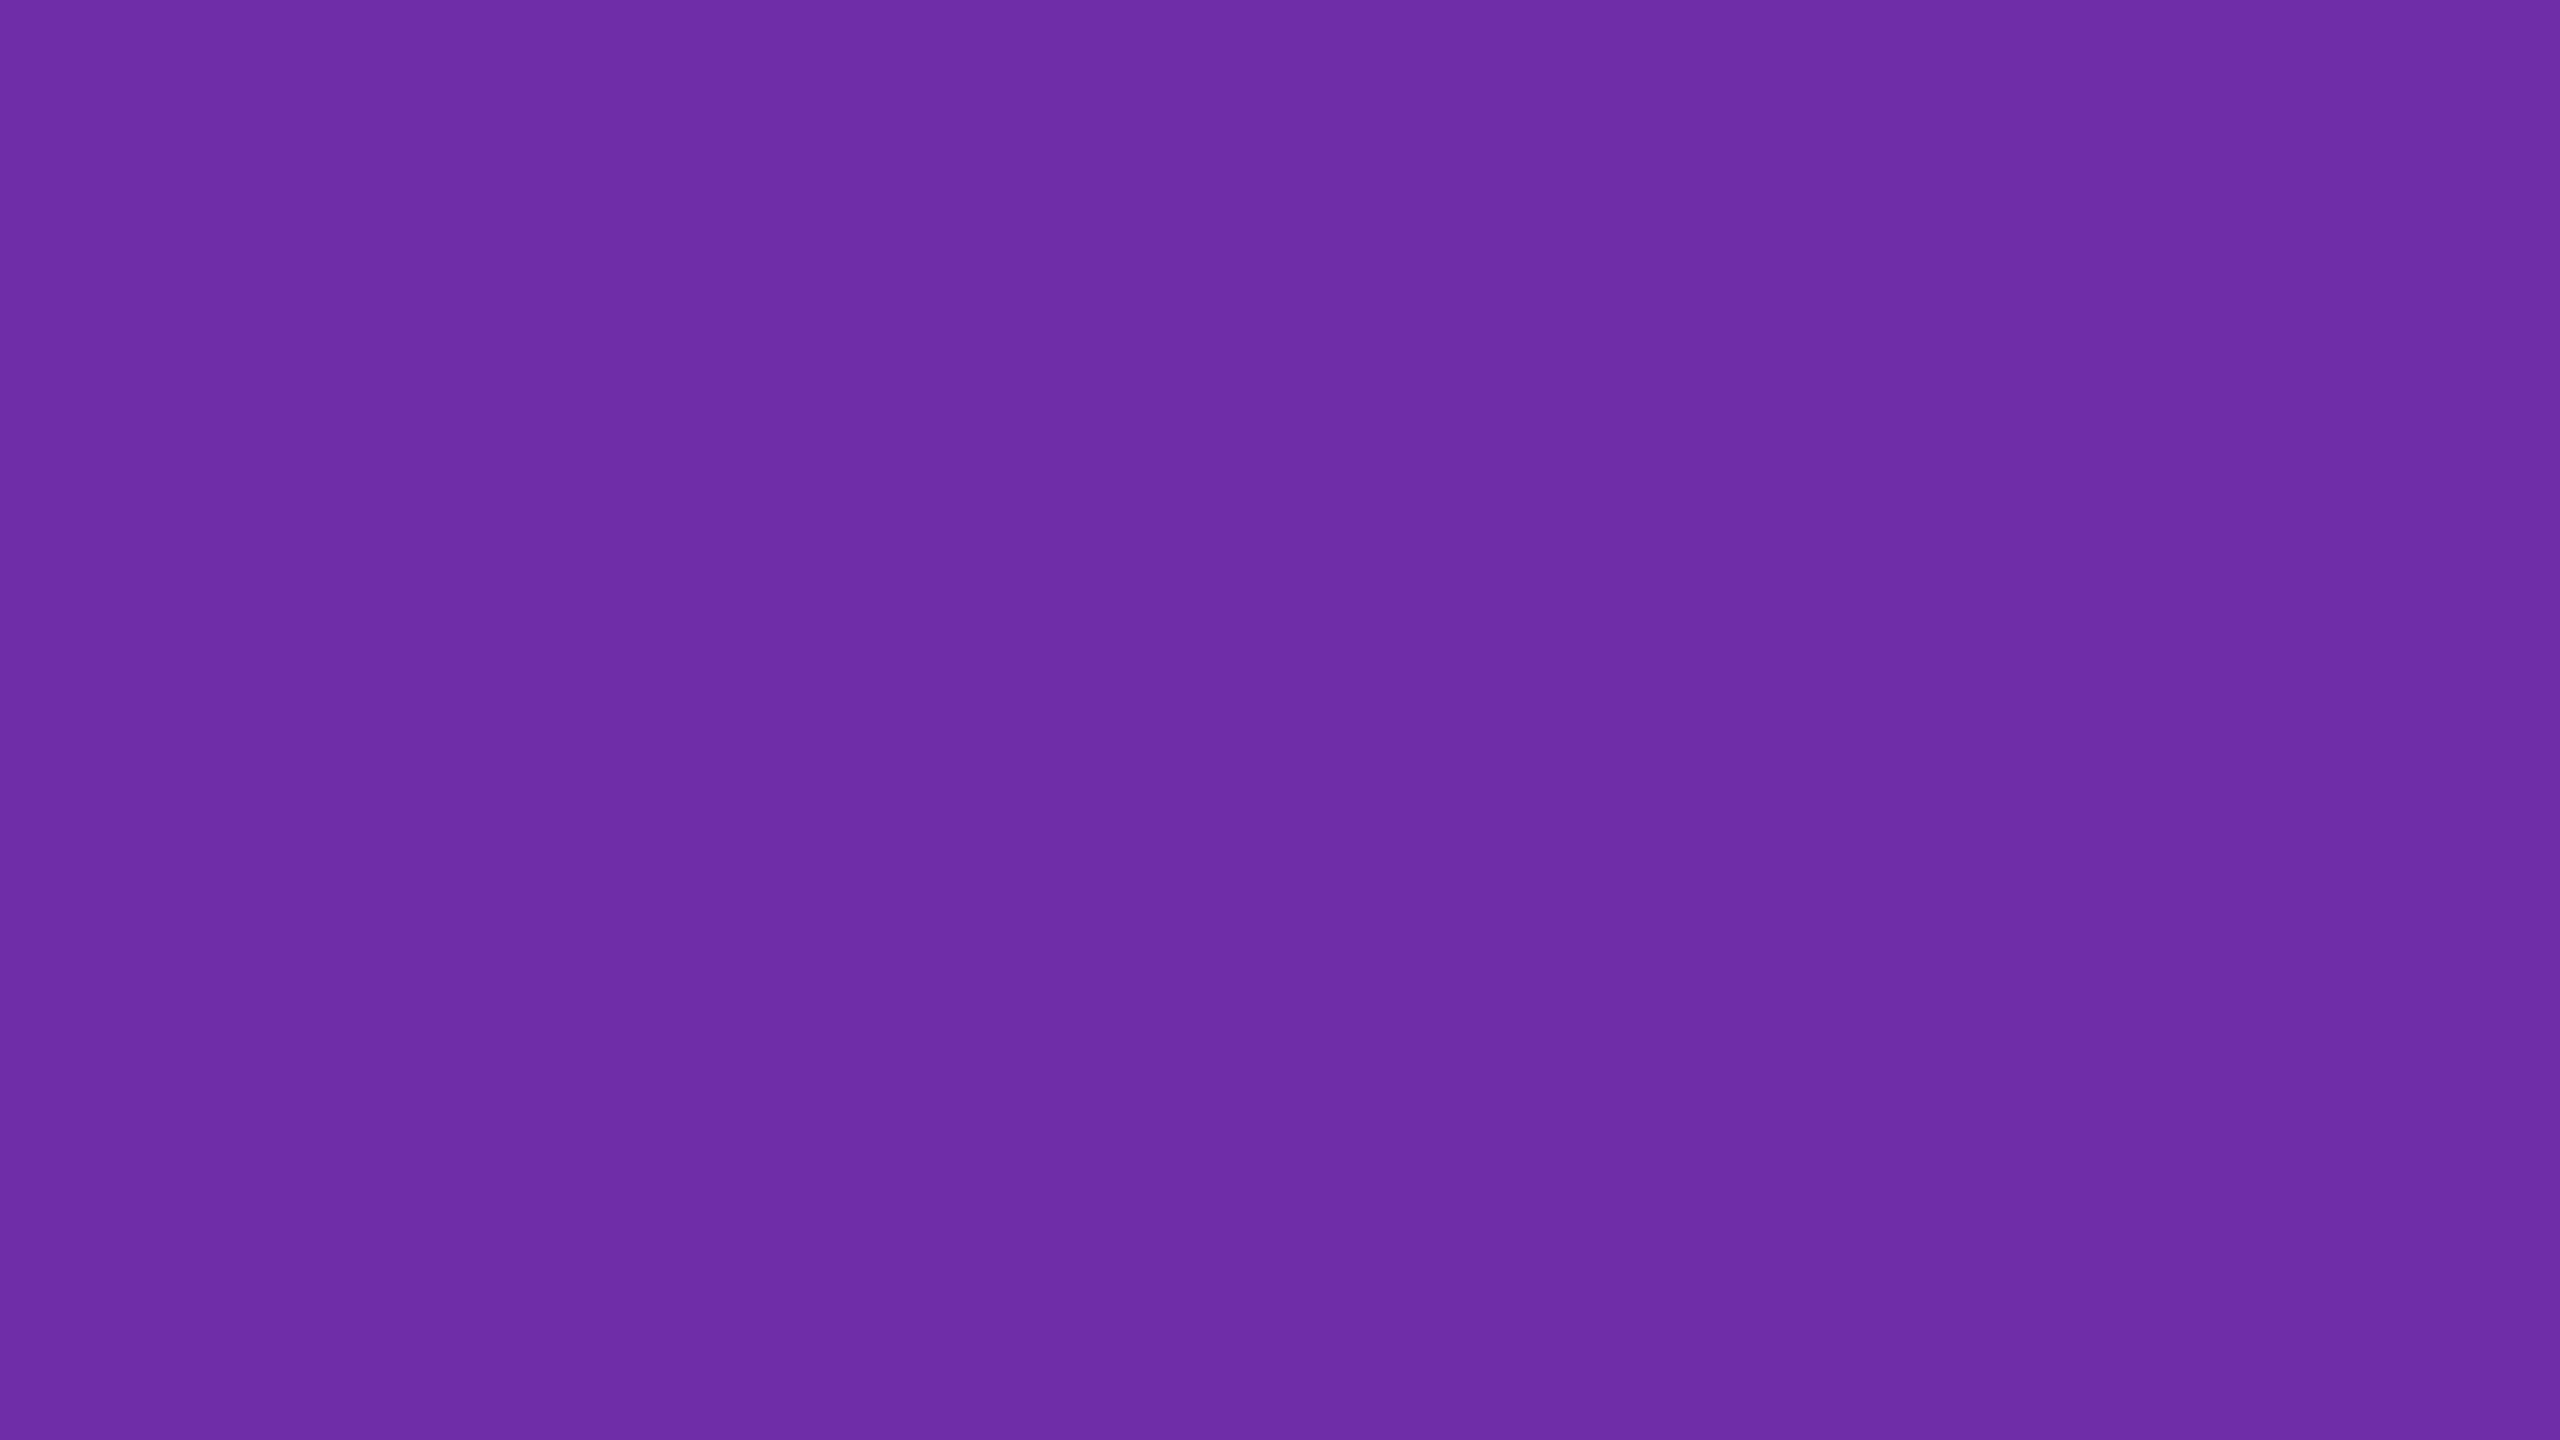 2560x1440 Grape Solid Color Background